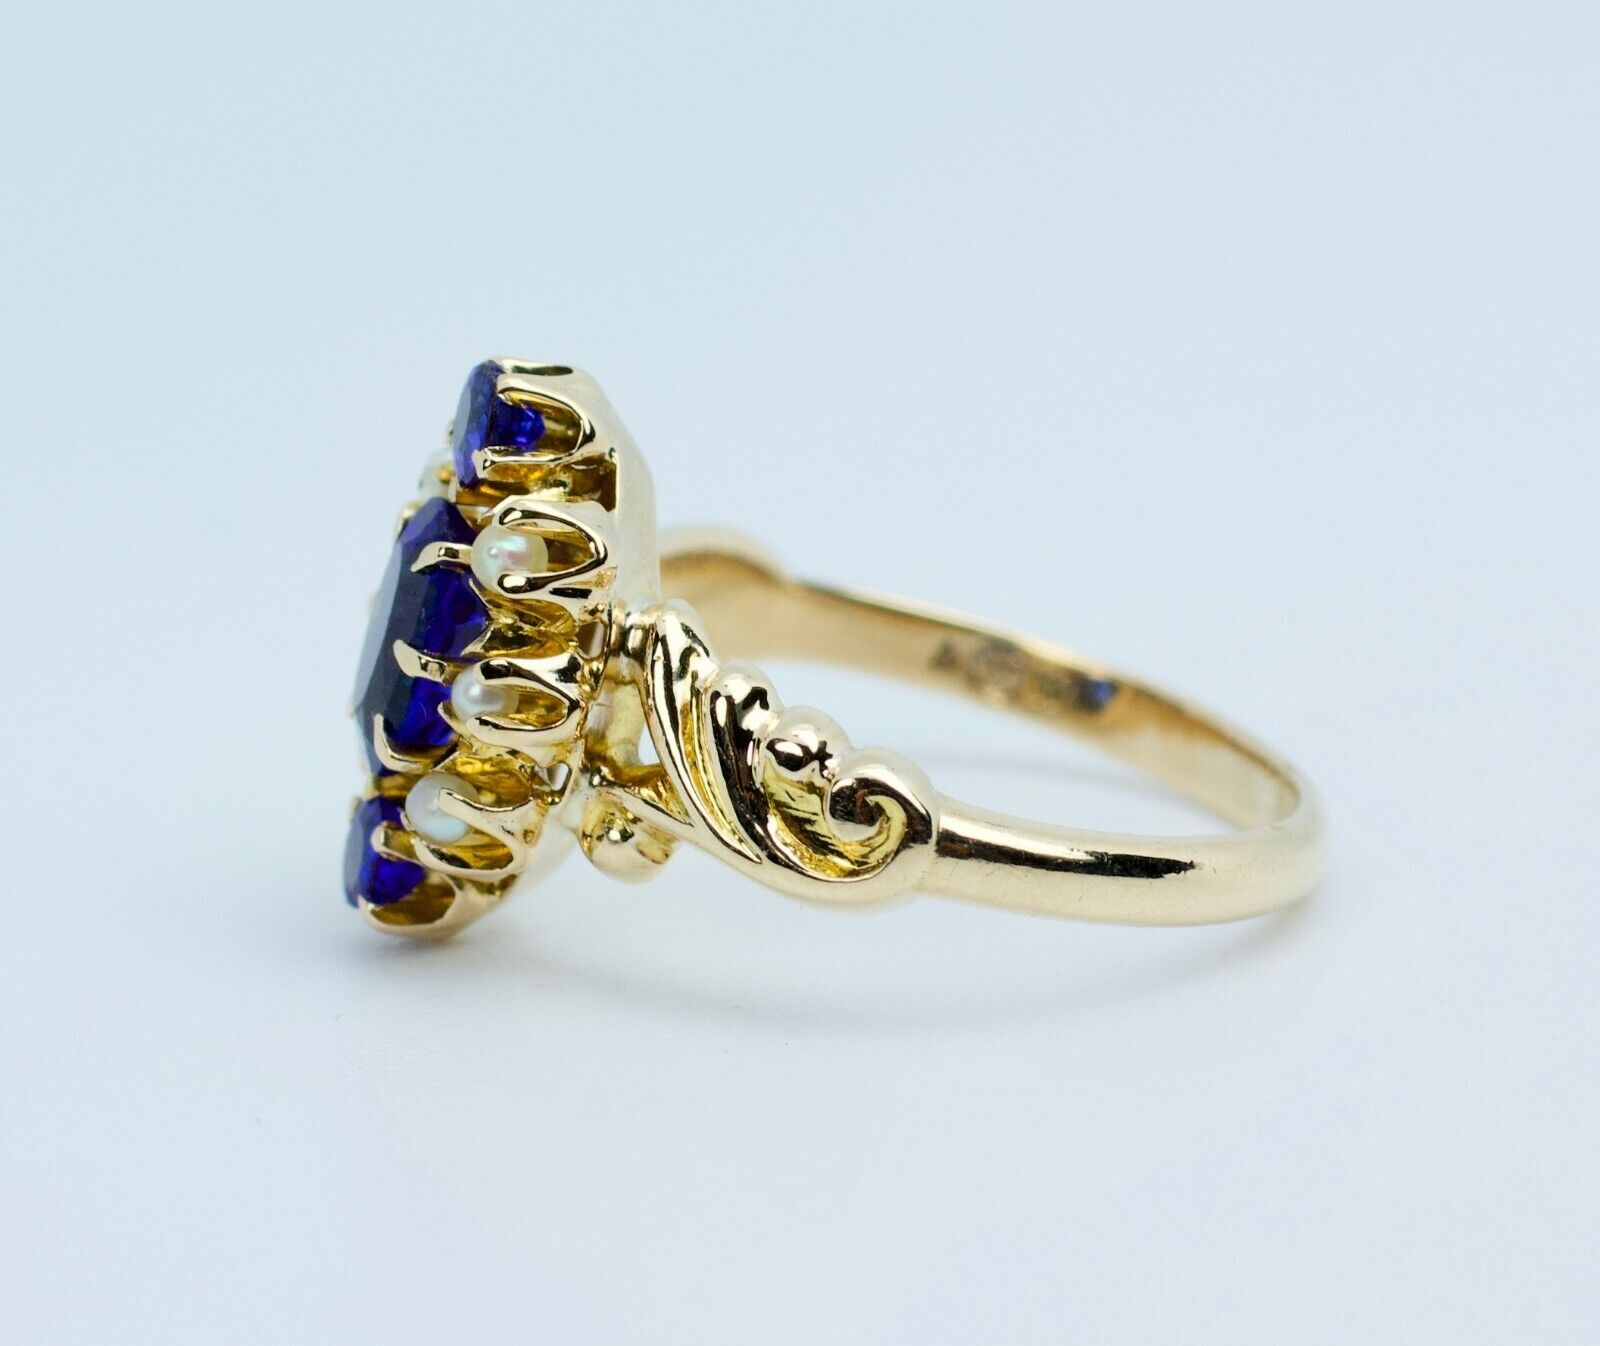 Vintage 14k Yellow Gold Oval Blue Synthetic Sapph… - image 9